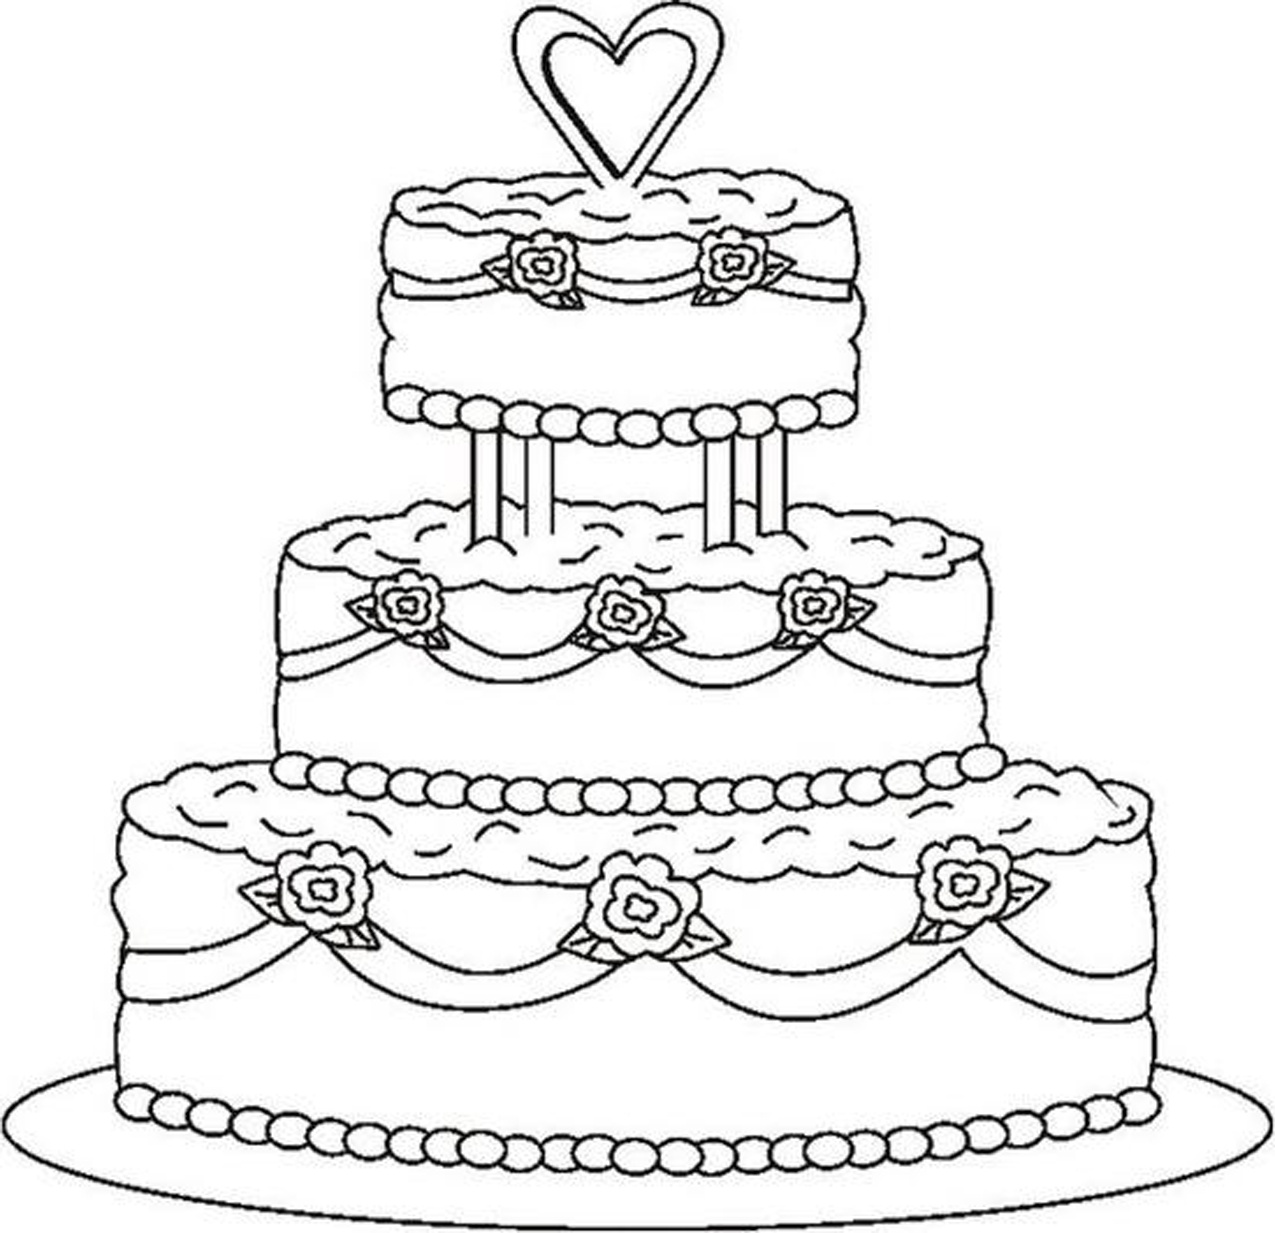 coloring cake pages coloring pagesprincess coloring pagesdisney princess pages cake coloring